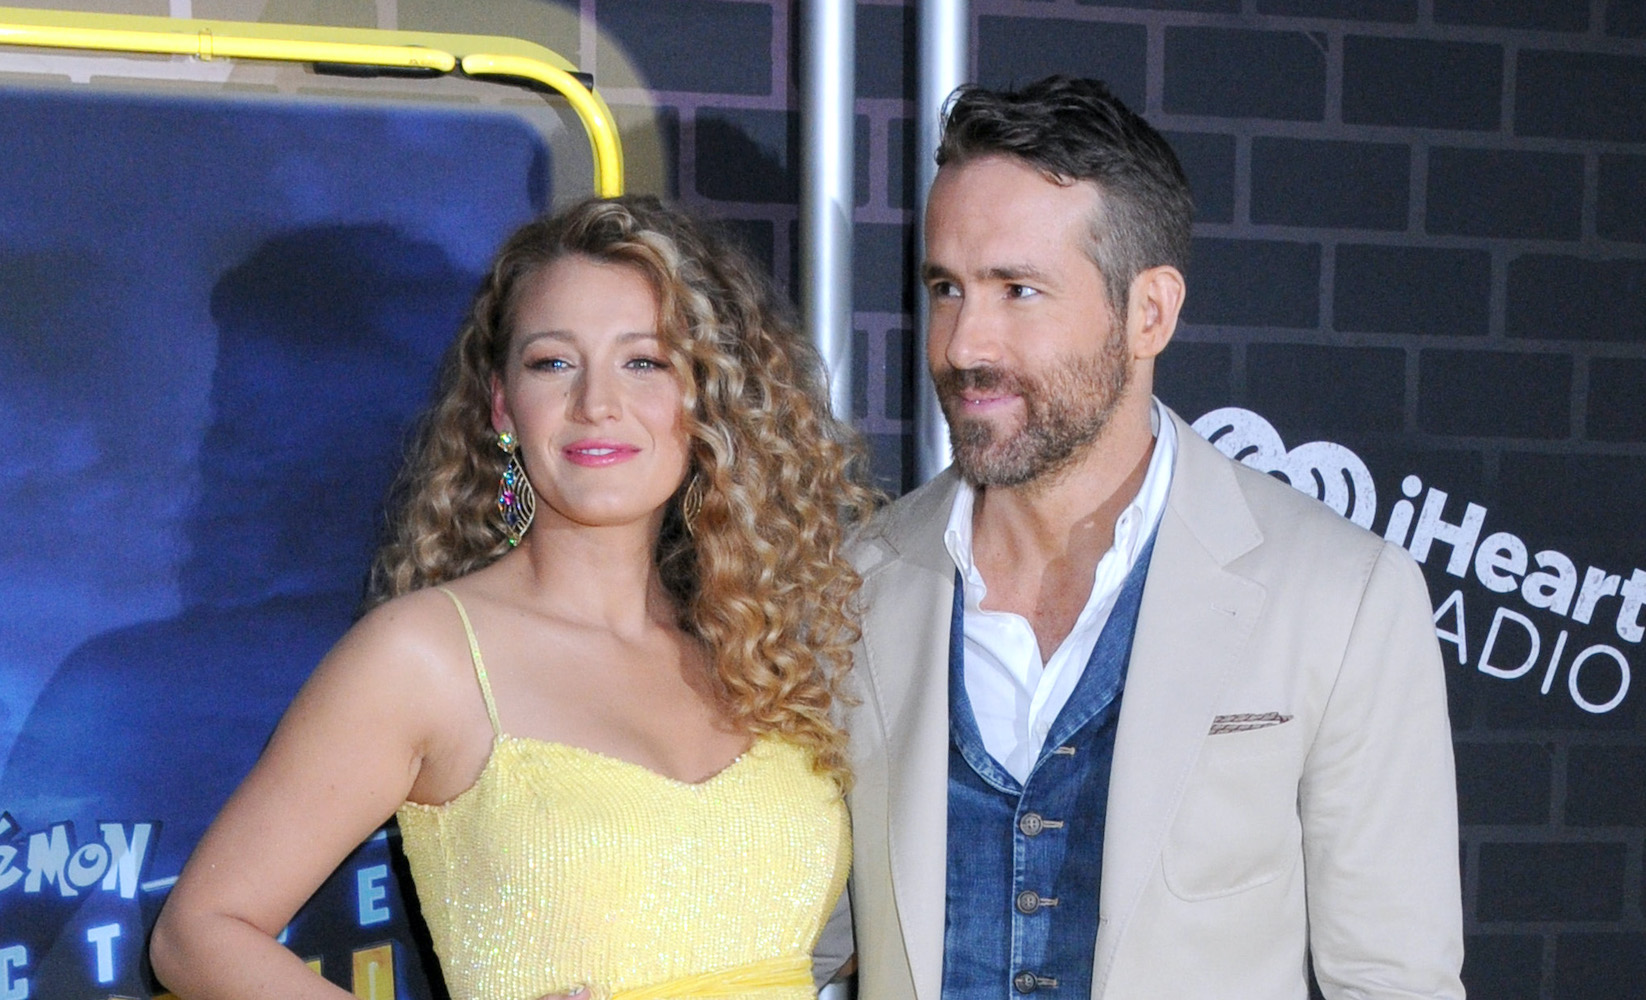 Ryan Reynolds and Blake Lively make a further $400,000 towards the fight against coronavirus